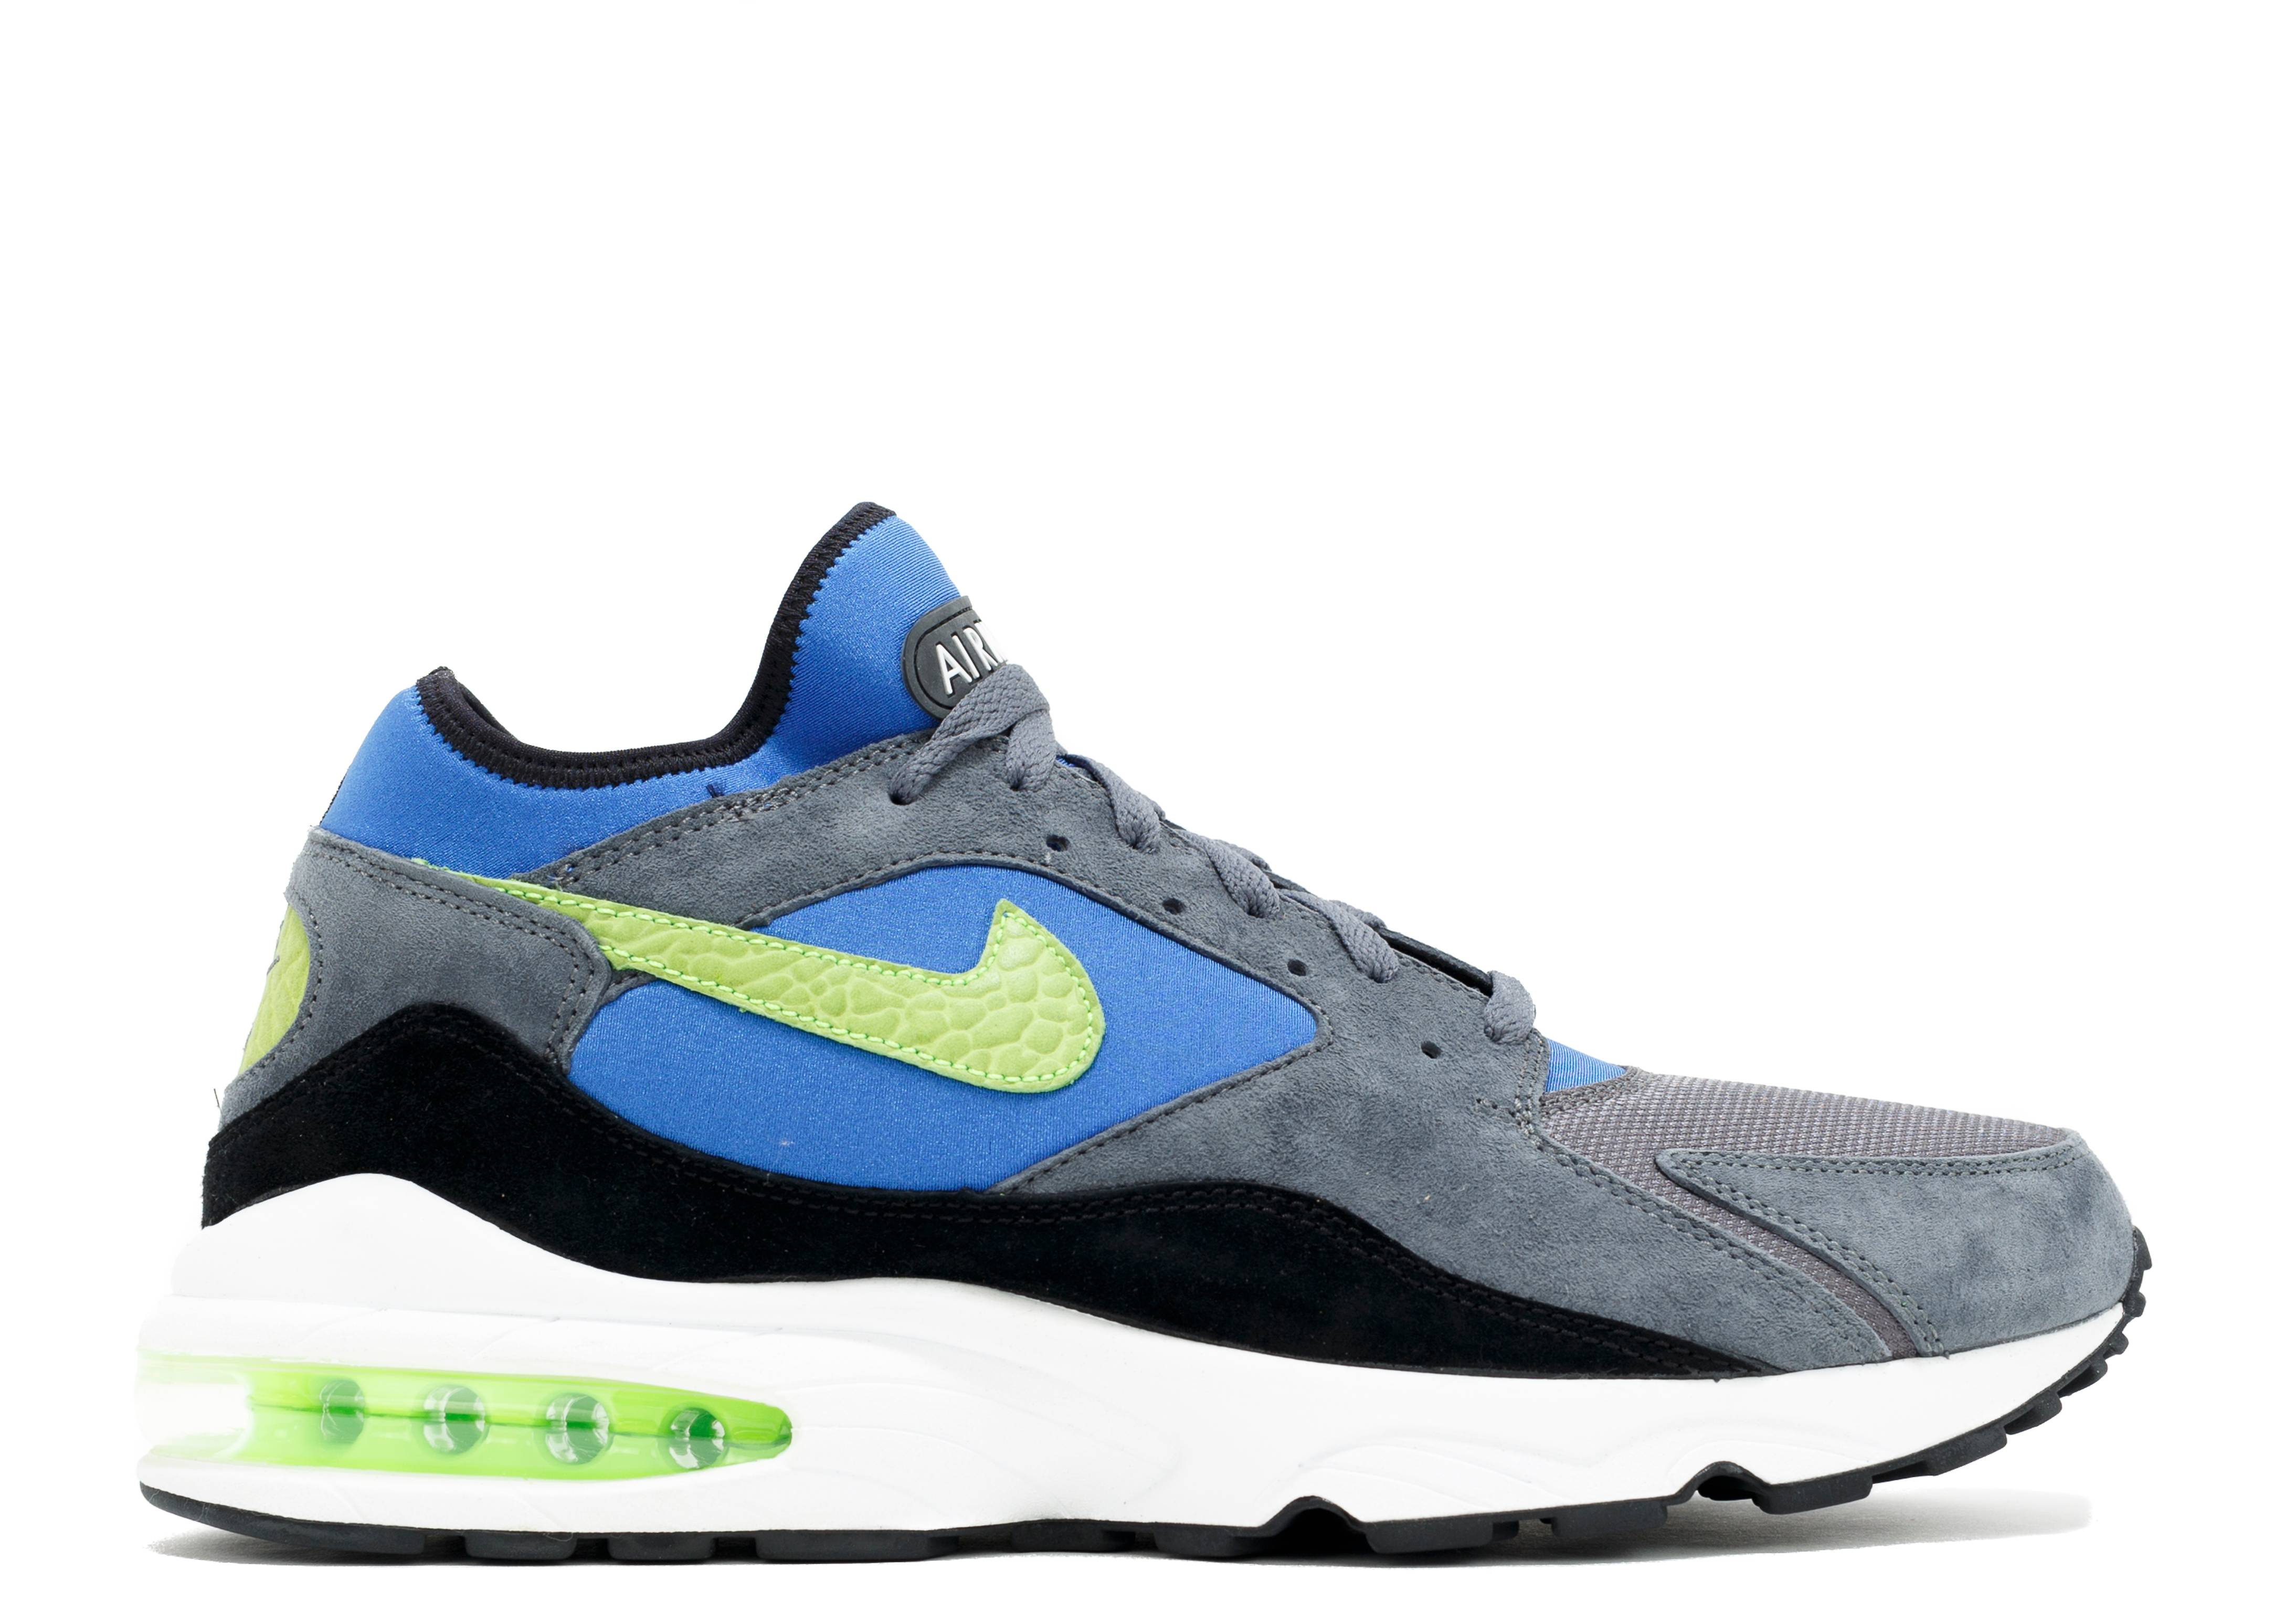 hot nike air max 93 flash lime ef6c6 6949c